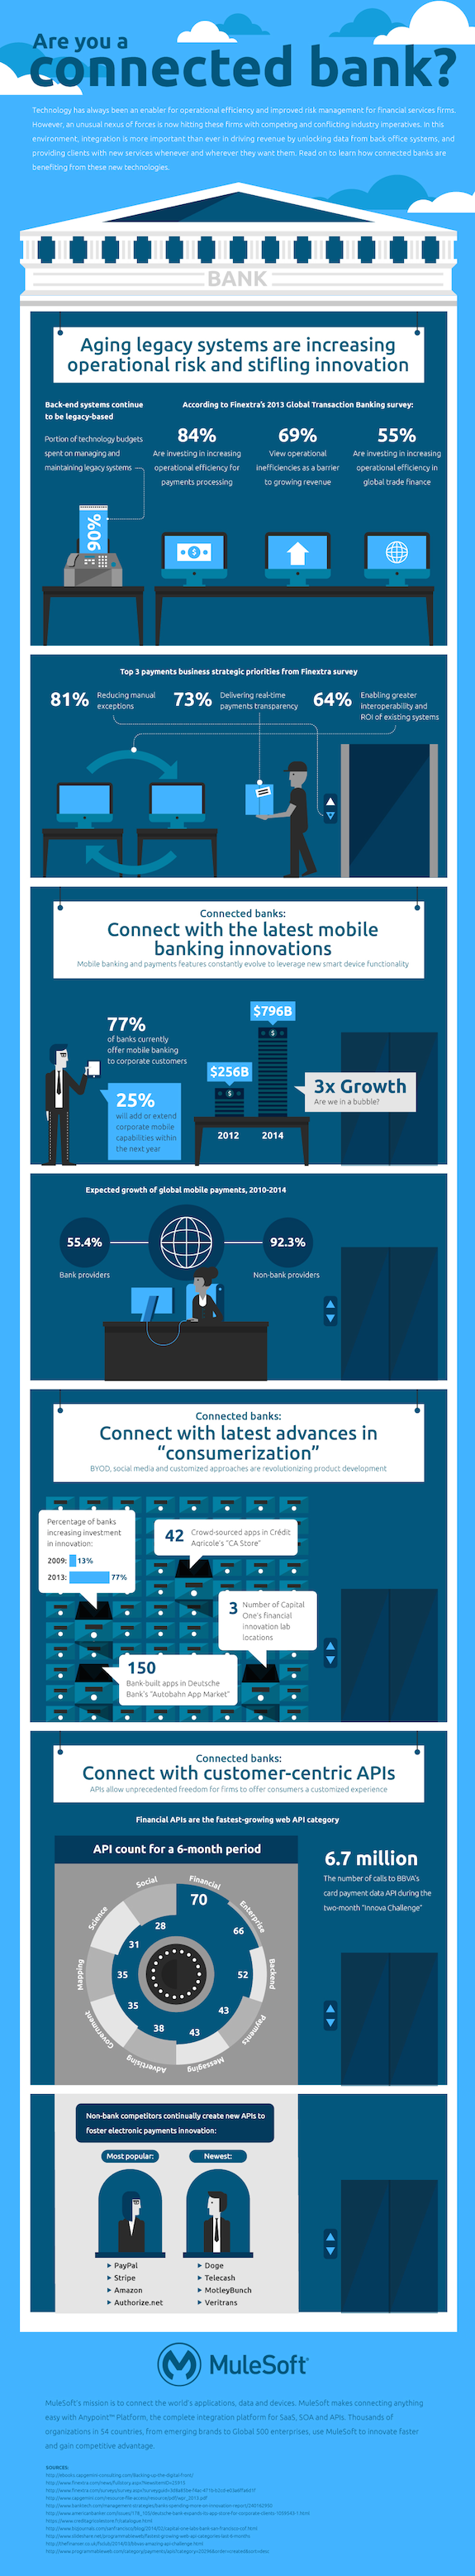 Future Of Financial Services Infographic Financial Services Investing Infographic Banking